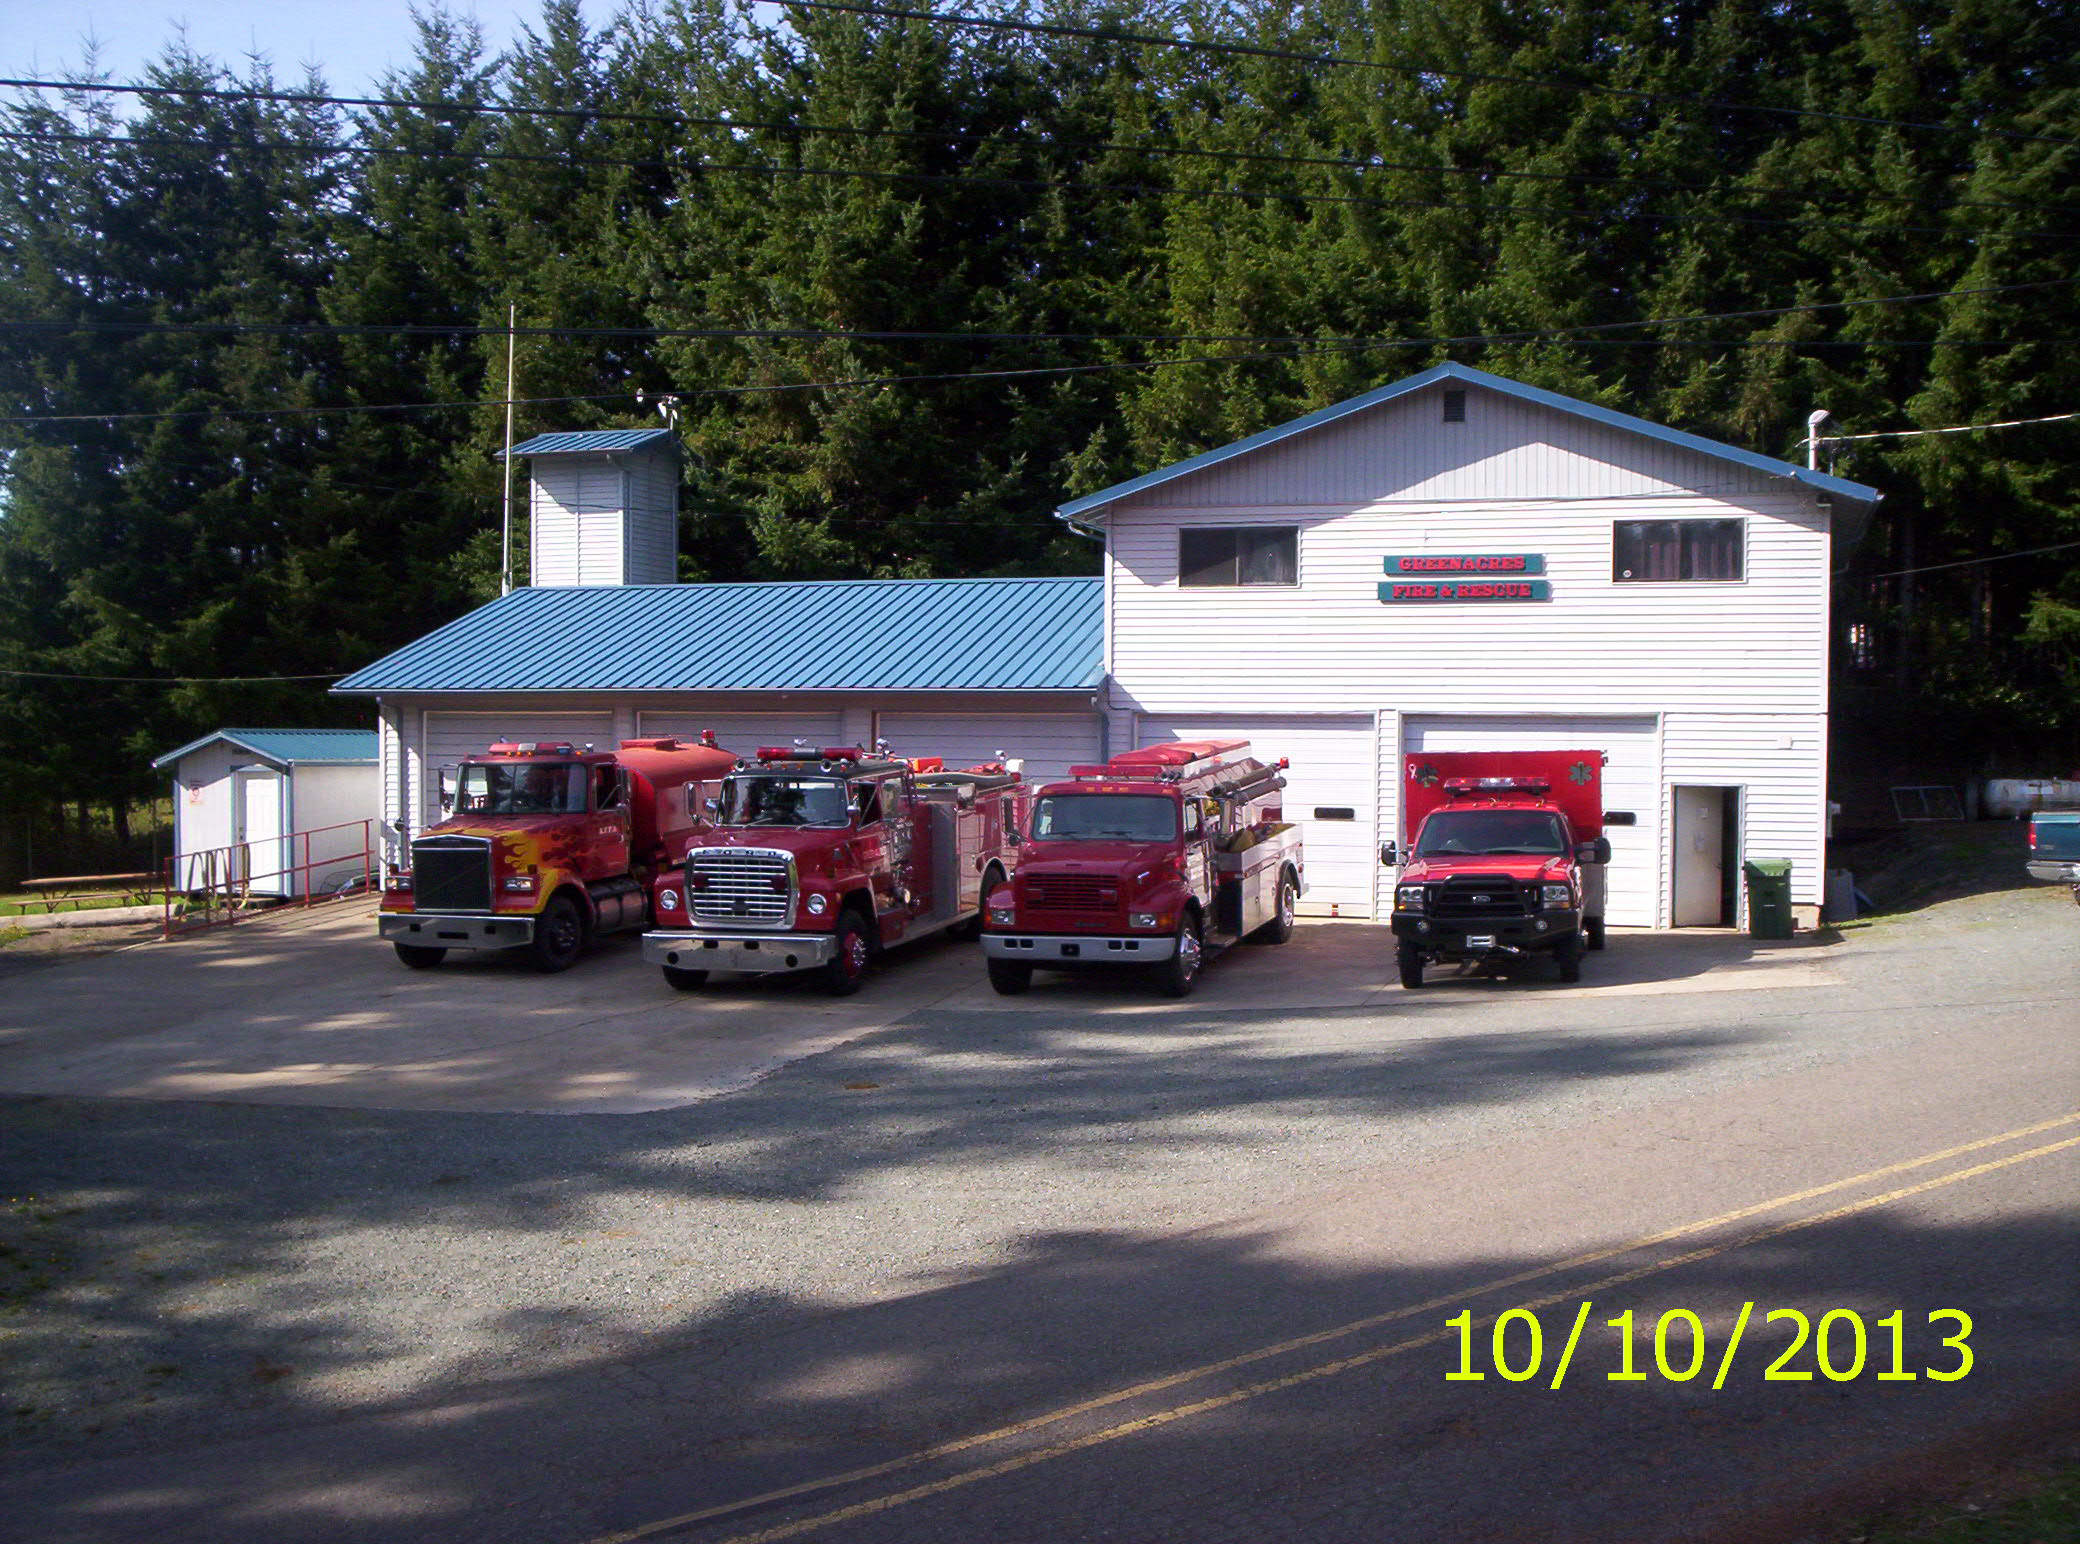 GREENACRES STATION - OUR AUTO-AID PARTNERS